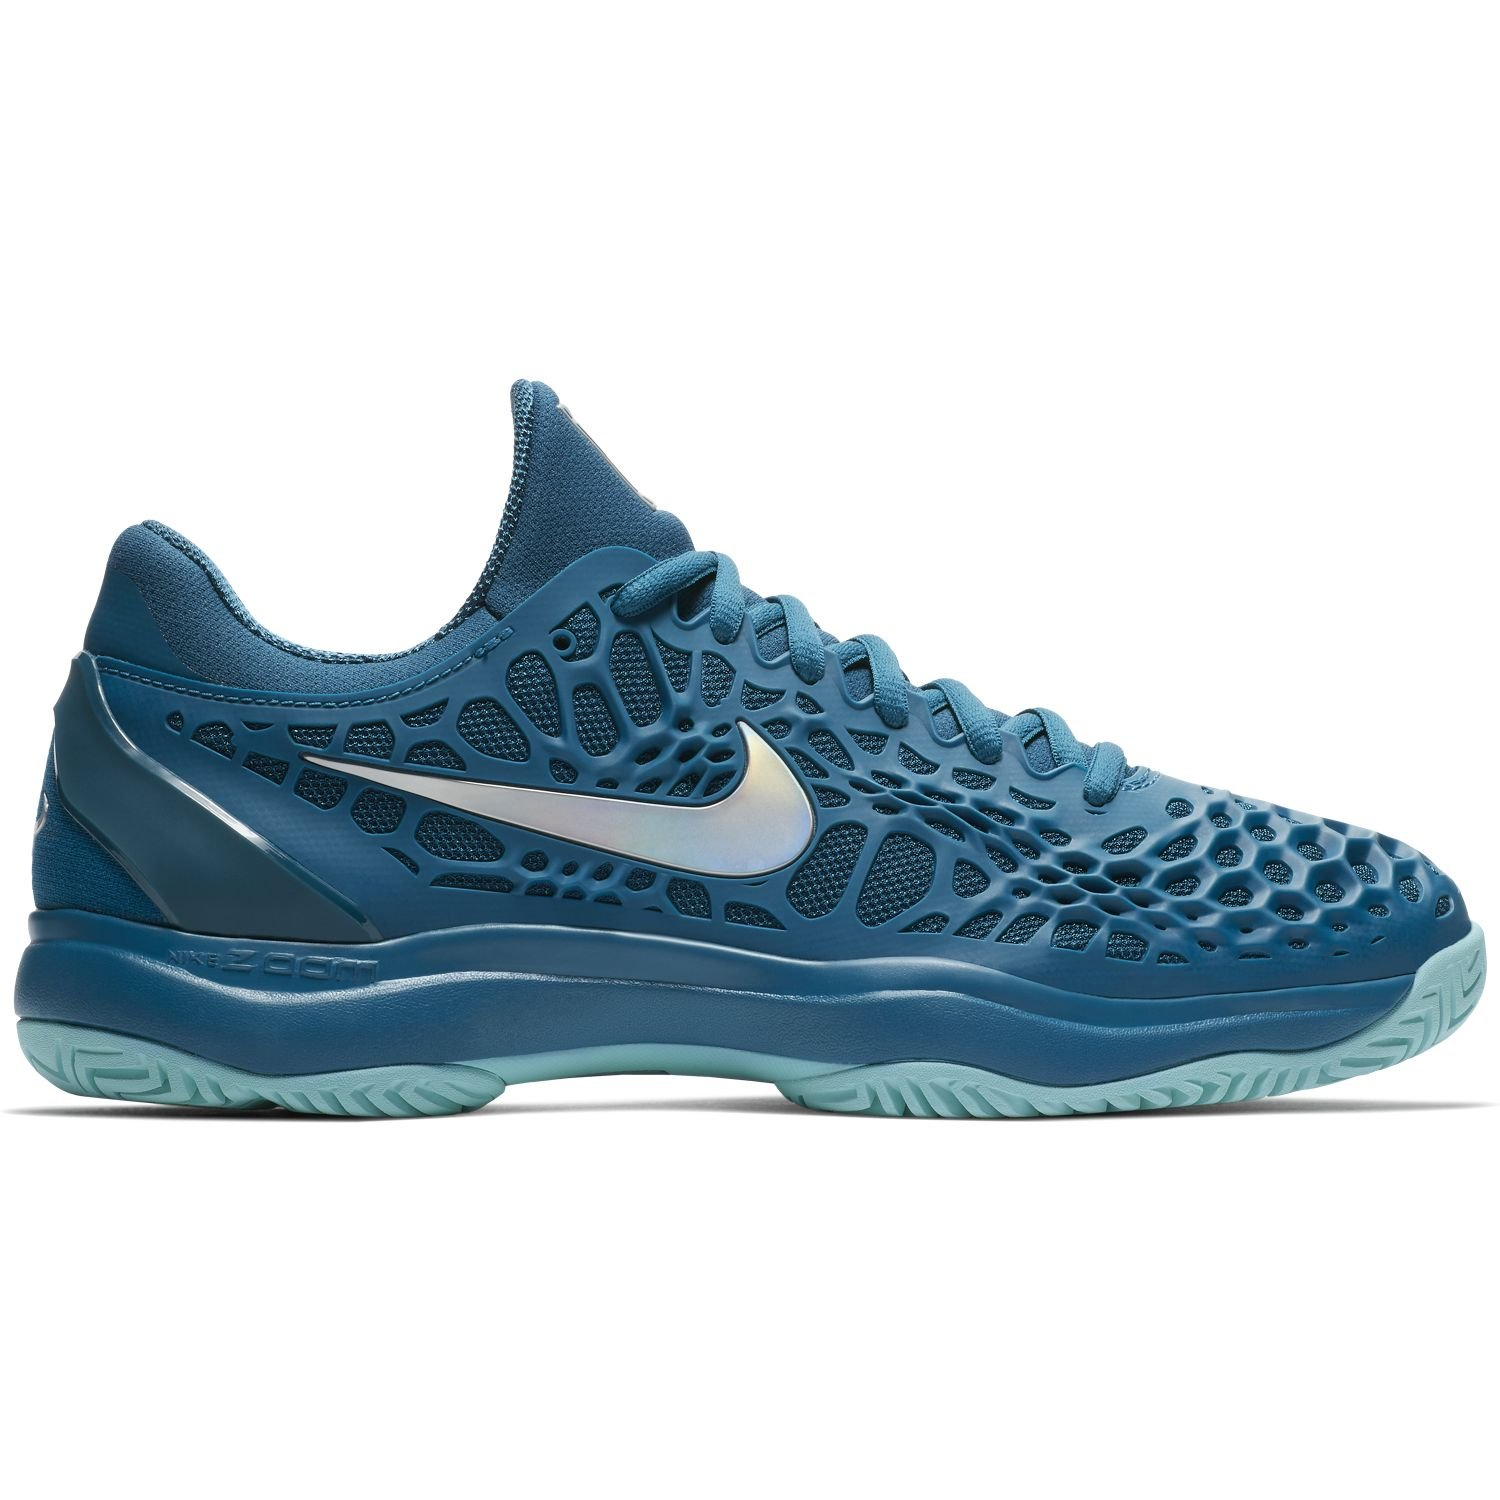 Nike Mens Zoom Cage 3 Tennis Shoes B0761Y7G38 6.5 M US|Green Abyss/Metallic Silver/Blue Force